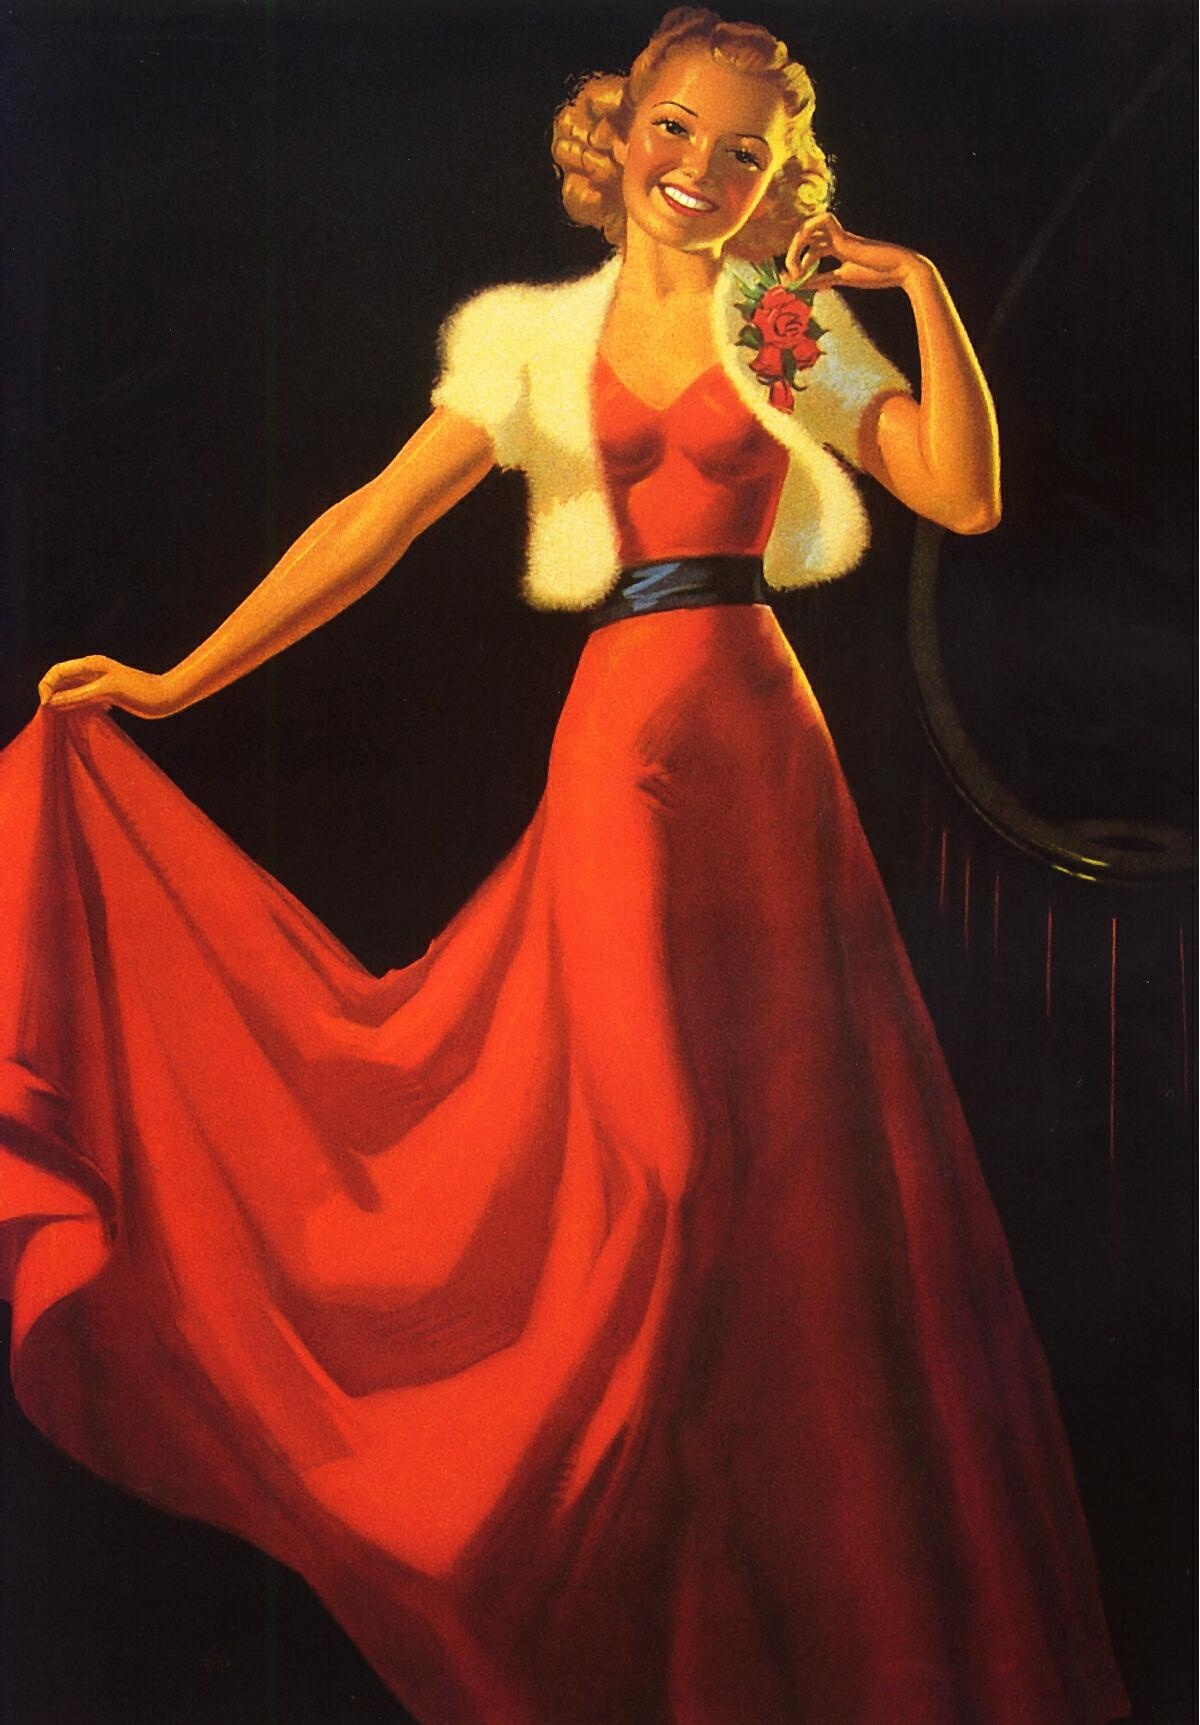 Whip Munson. Girl in red dress with flower